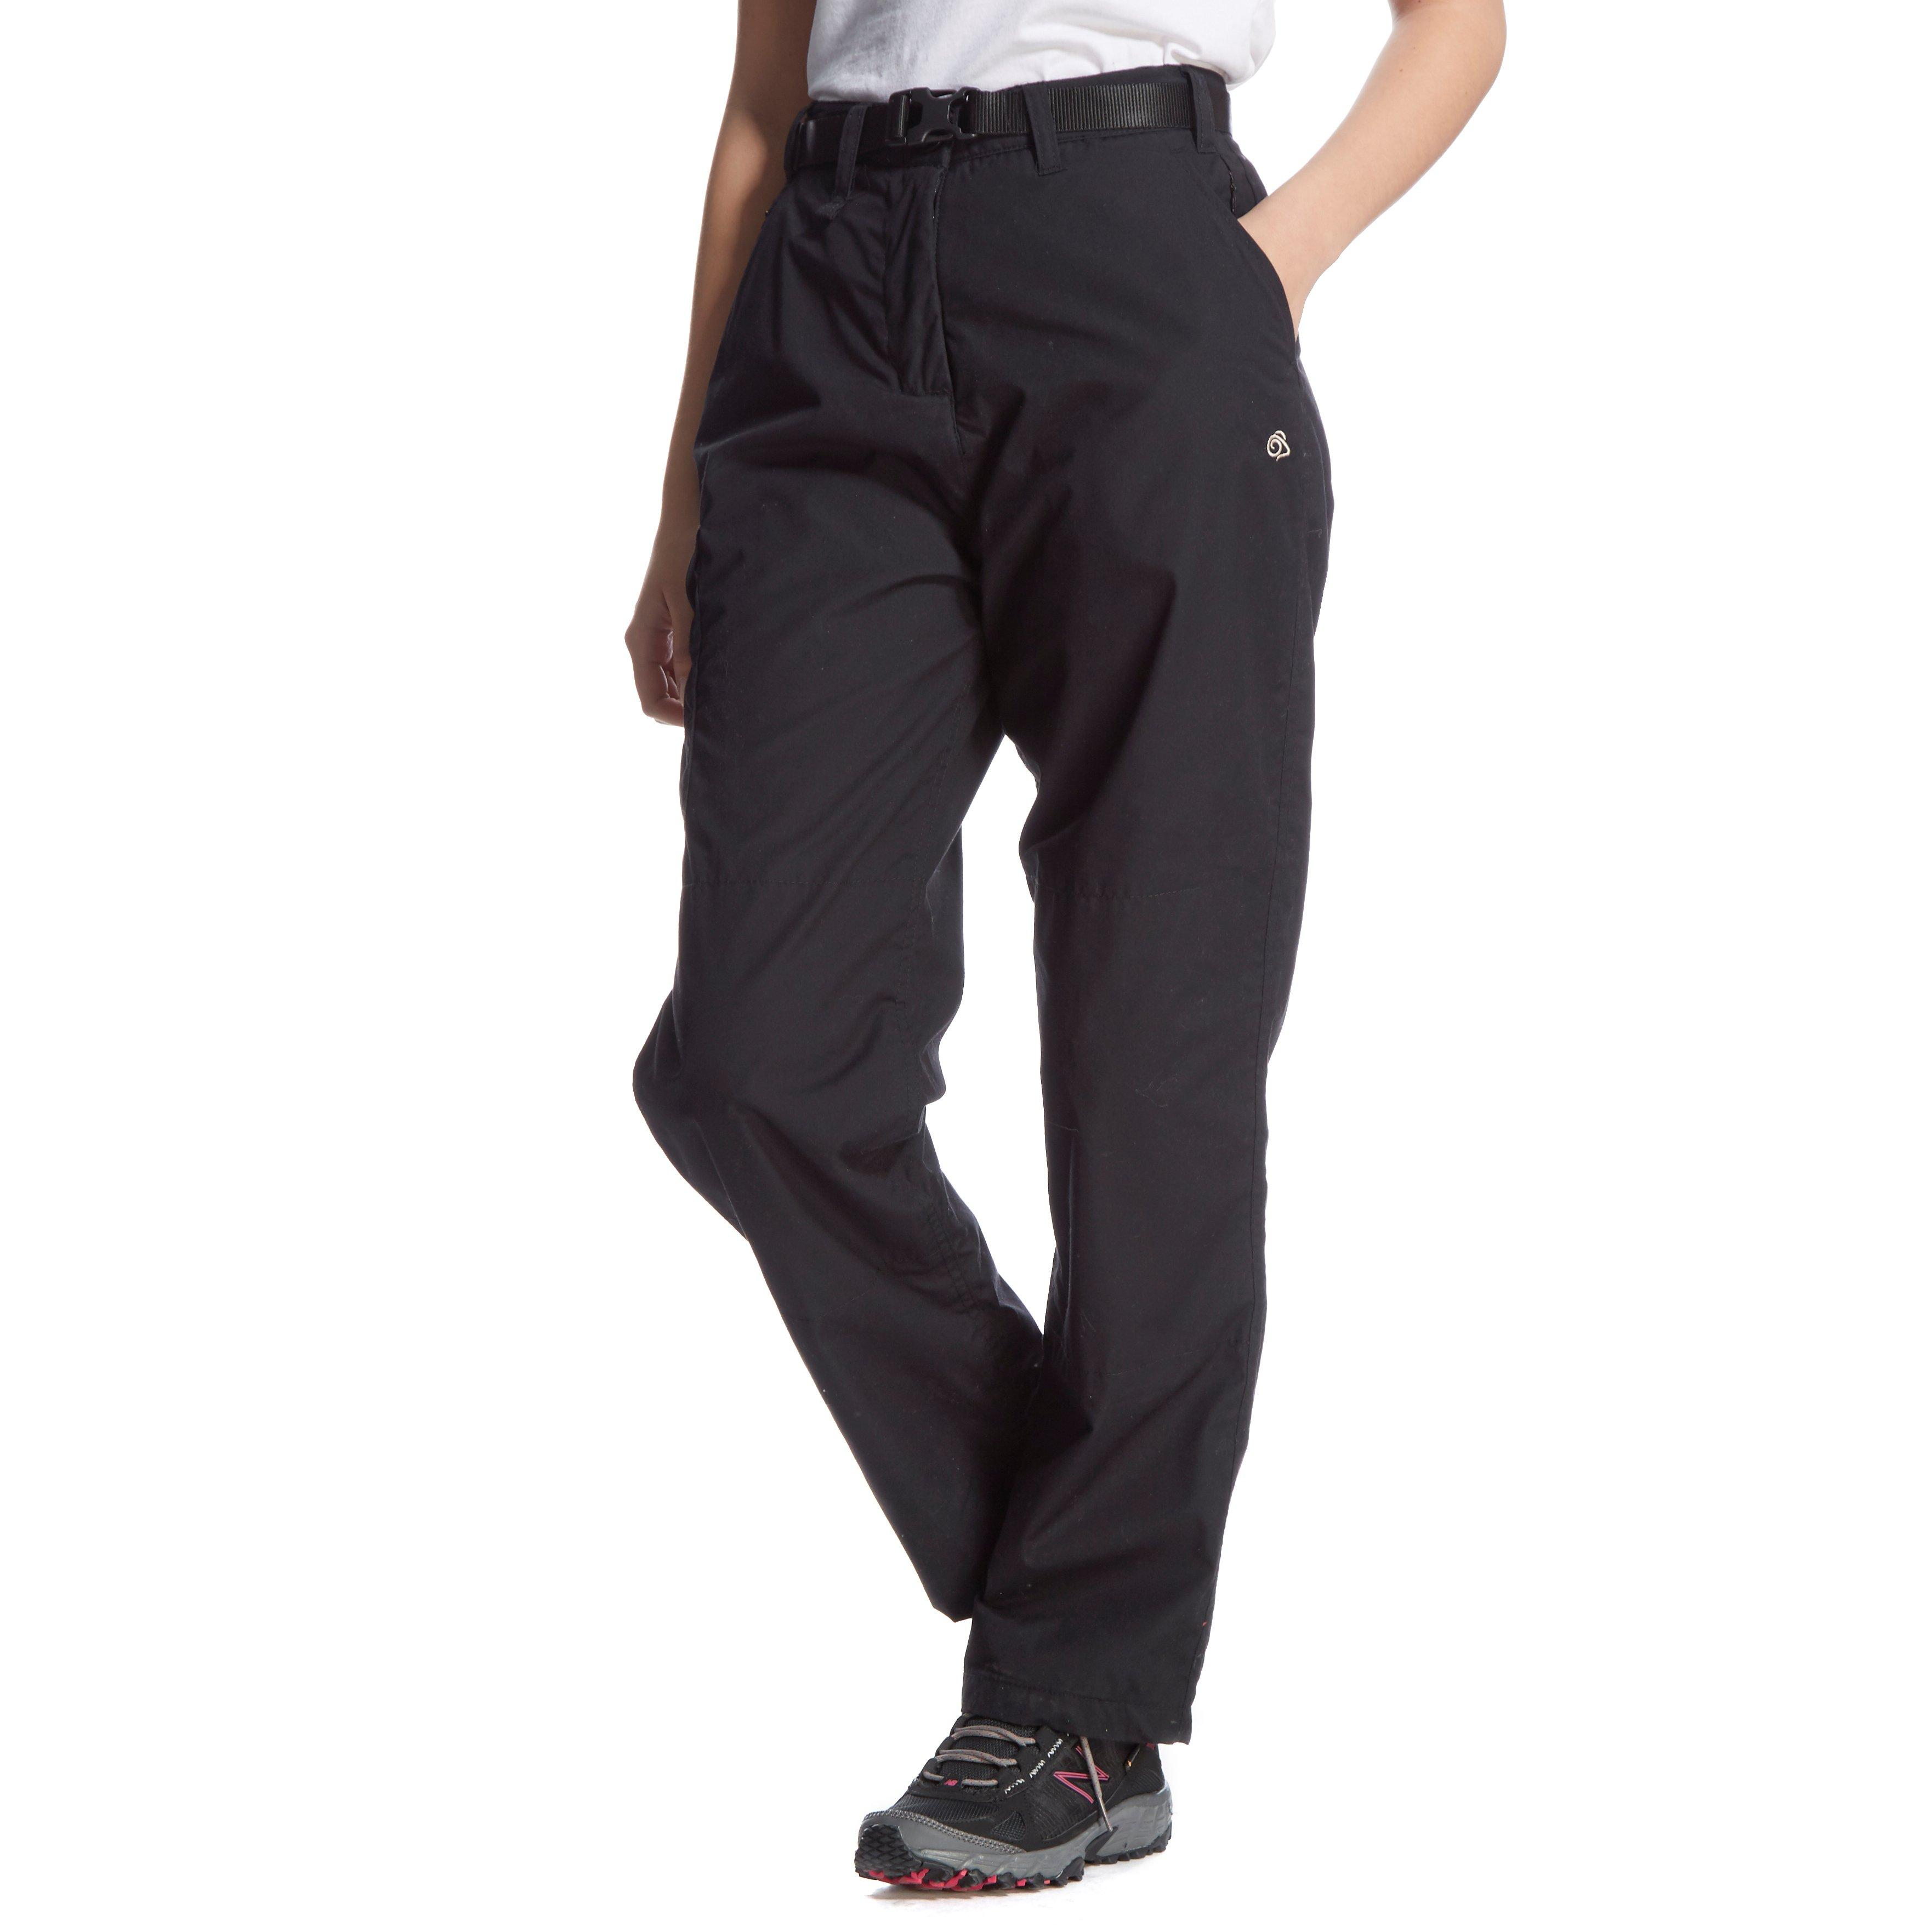 Craghoppers Womens Kiwi Winter Lined Trousers (Short) Black